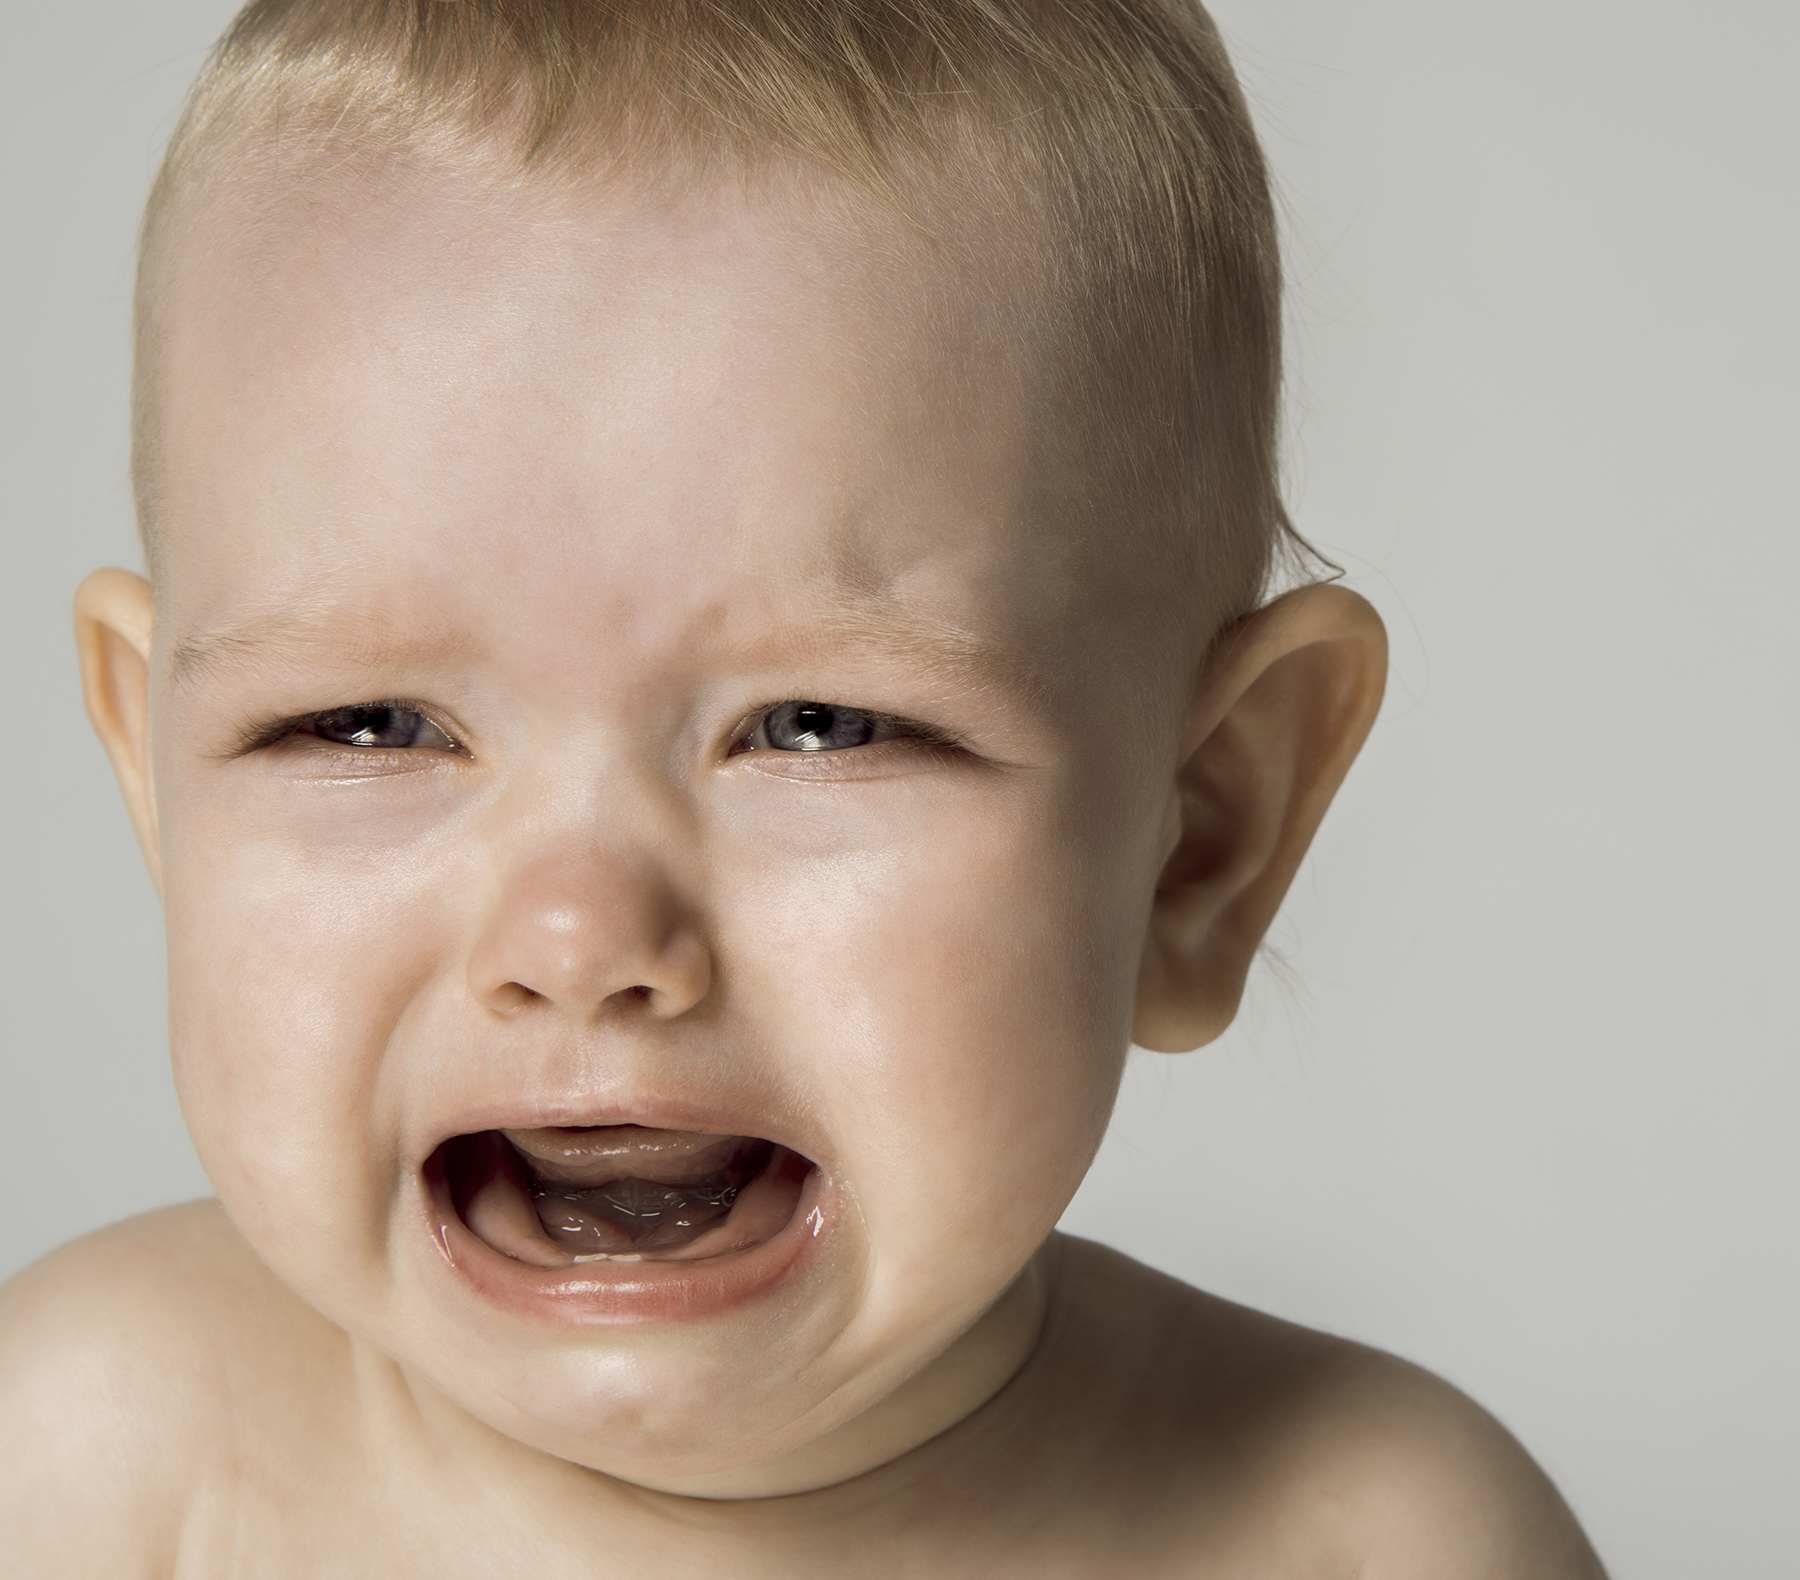 How Can I (Nicely) Complain About My Neighbor's Crying Baby?